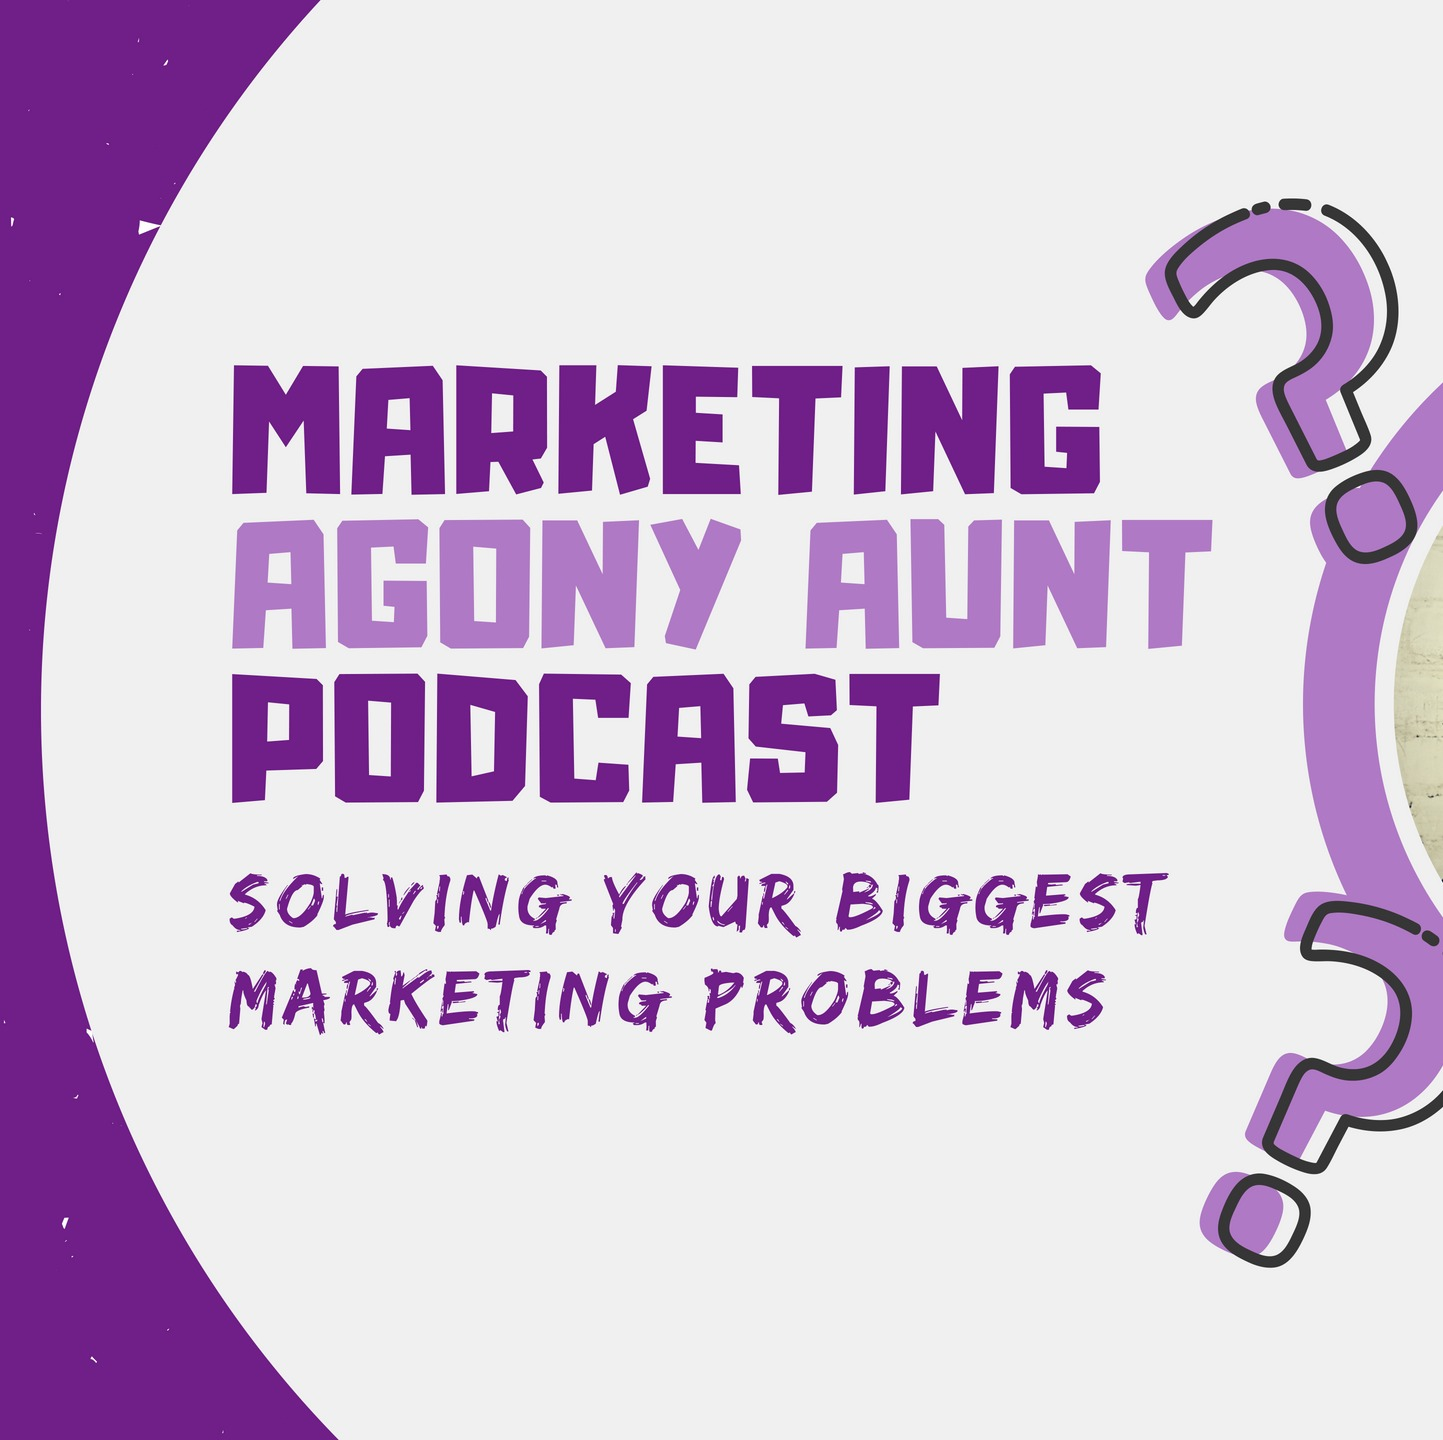 The Marketing Agony Aunt